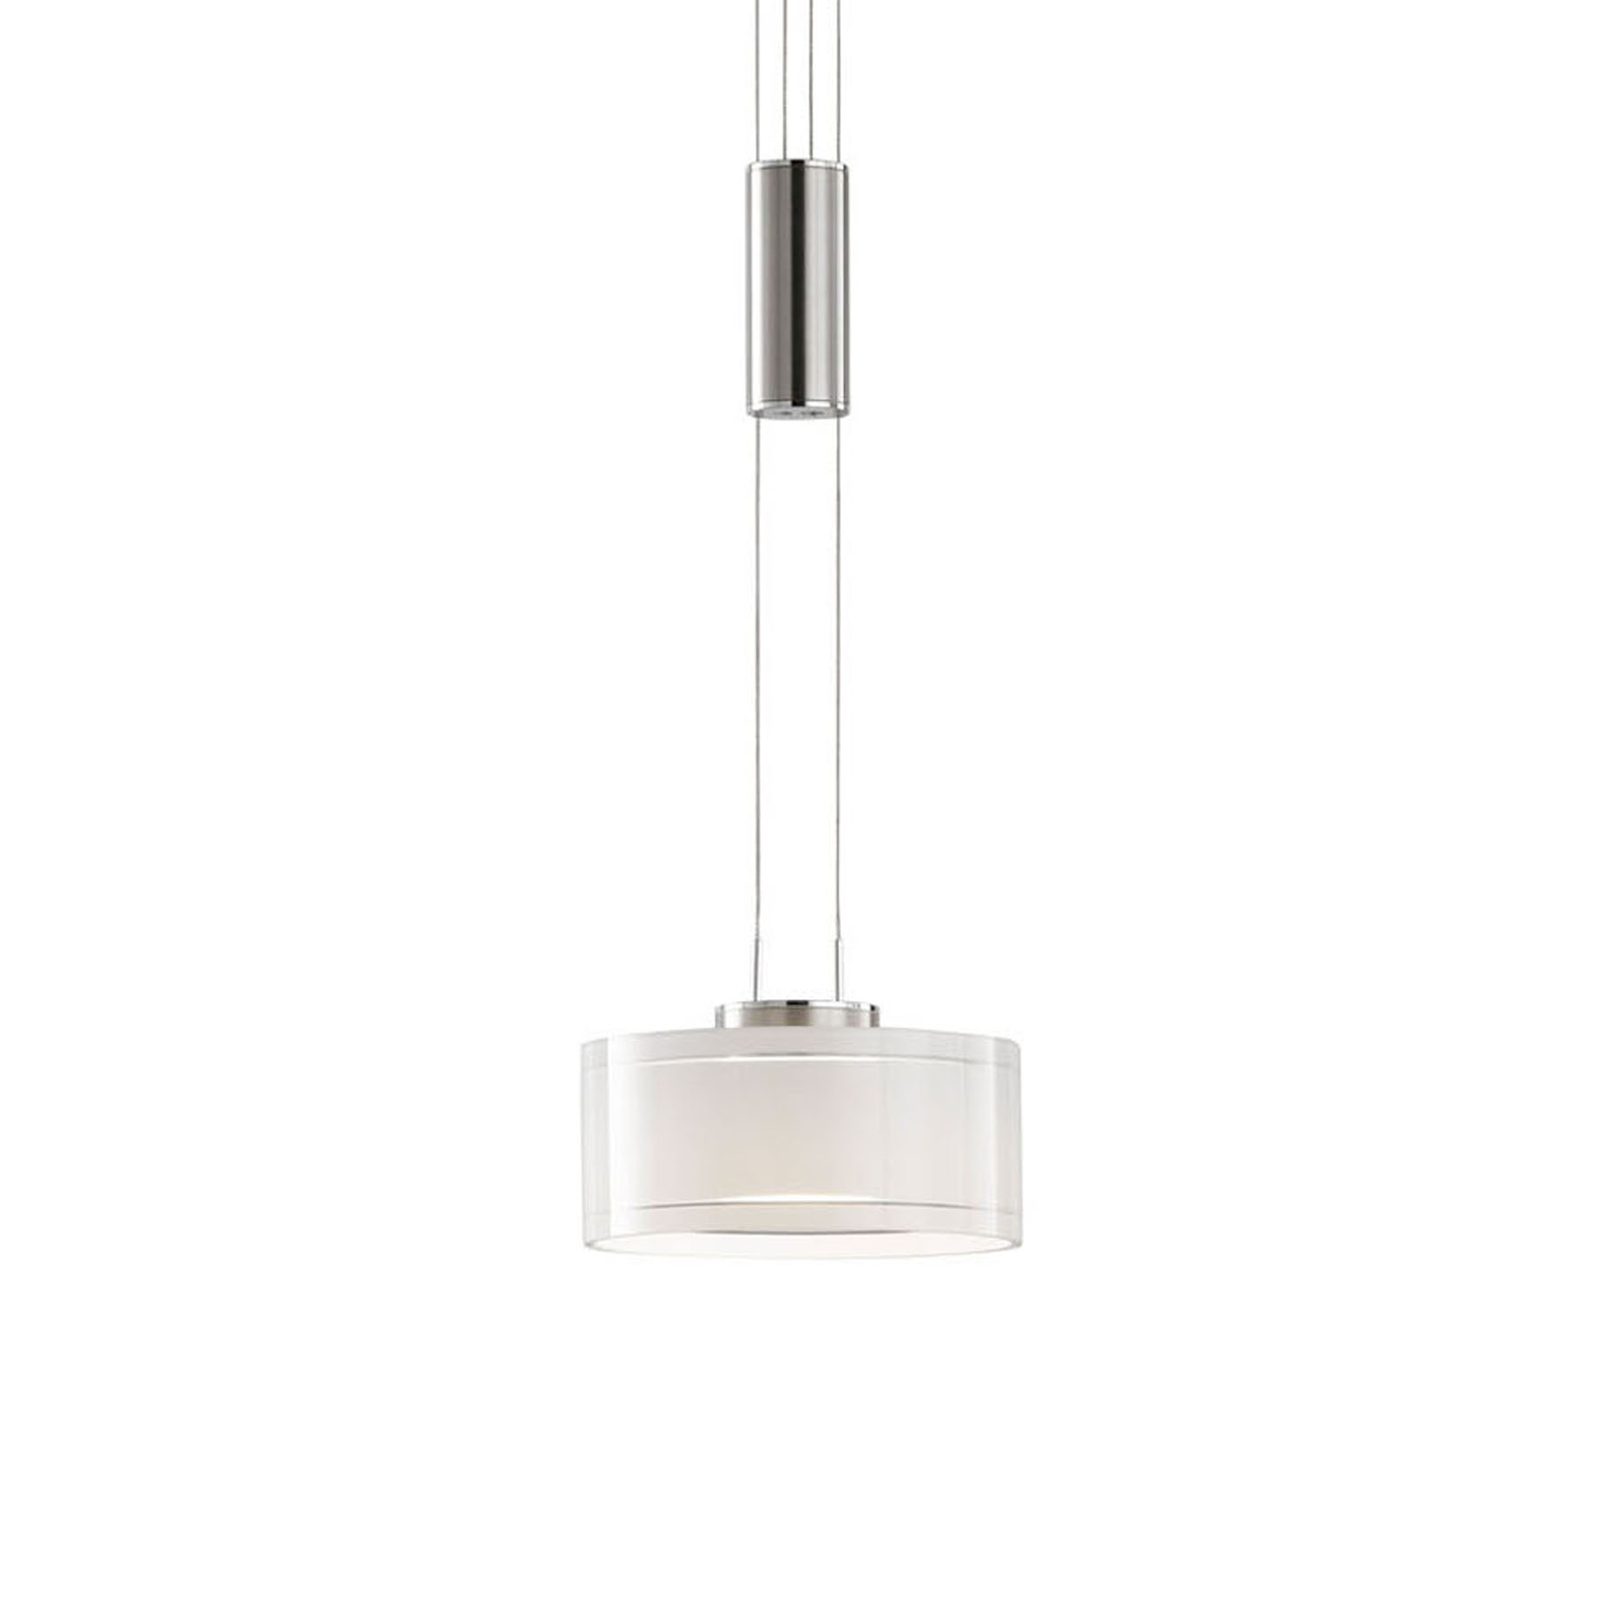 LED hanglamp Lavin 1-lamp nikkel/wit